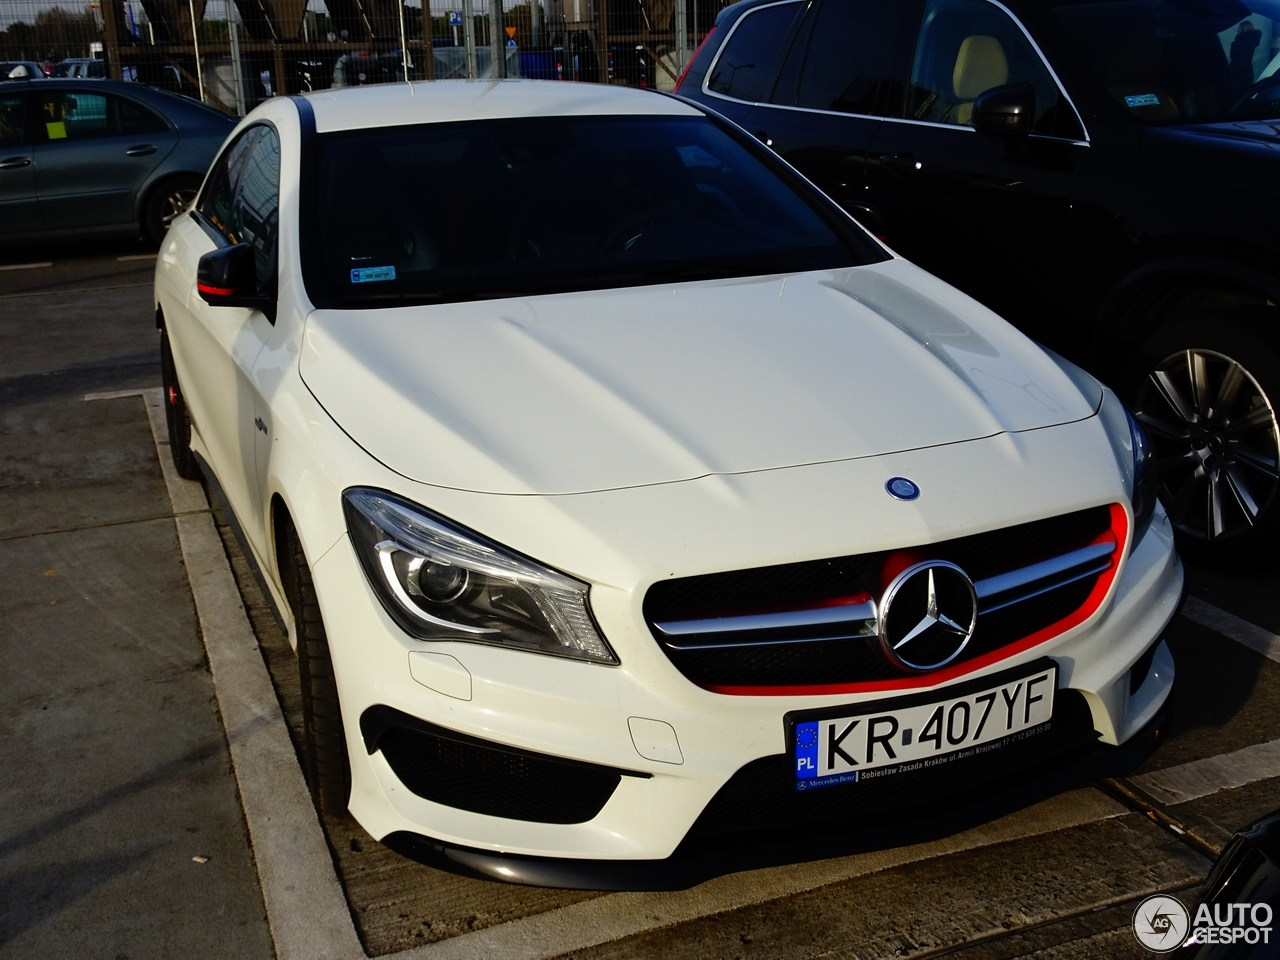 Mercedes benz cla 45 amg edition 1 c117 19 october 2016 for Mercedes benz cla amg price